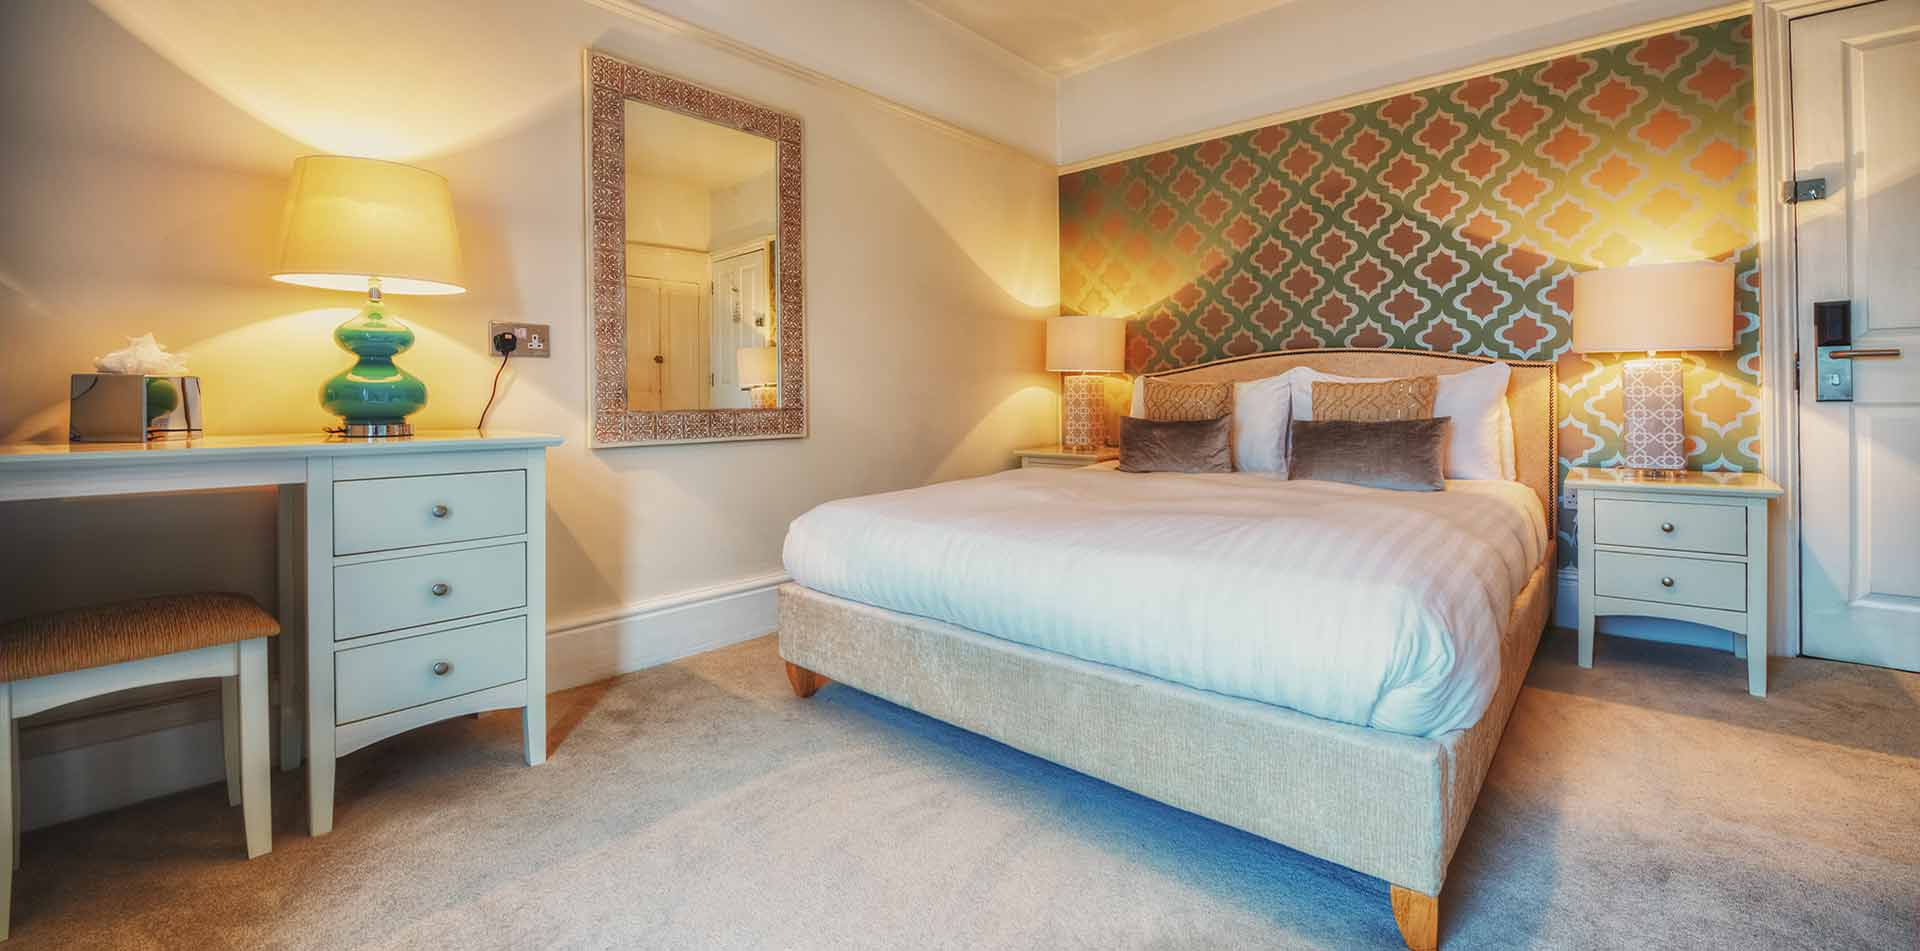 Europe United Kingdom England Portsmouth Stattons Boutique Hotel chic contemporary decor - luxury vacation destinations